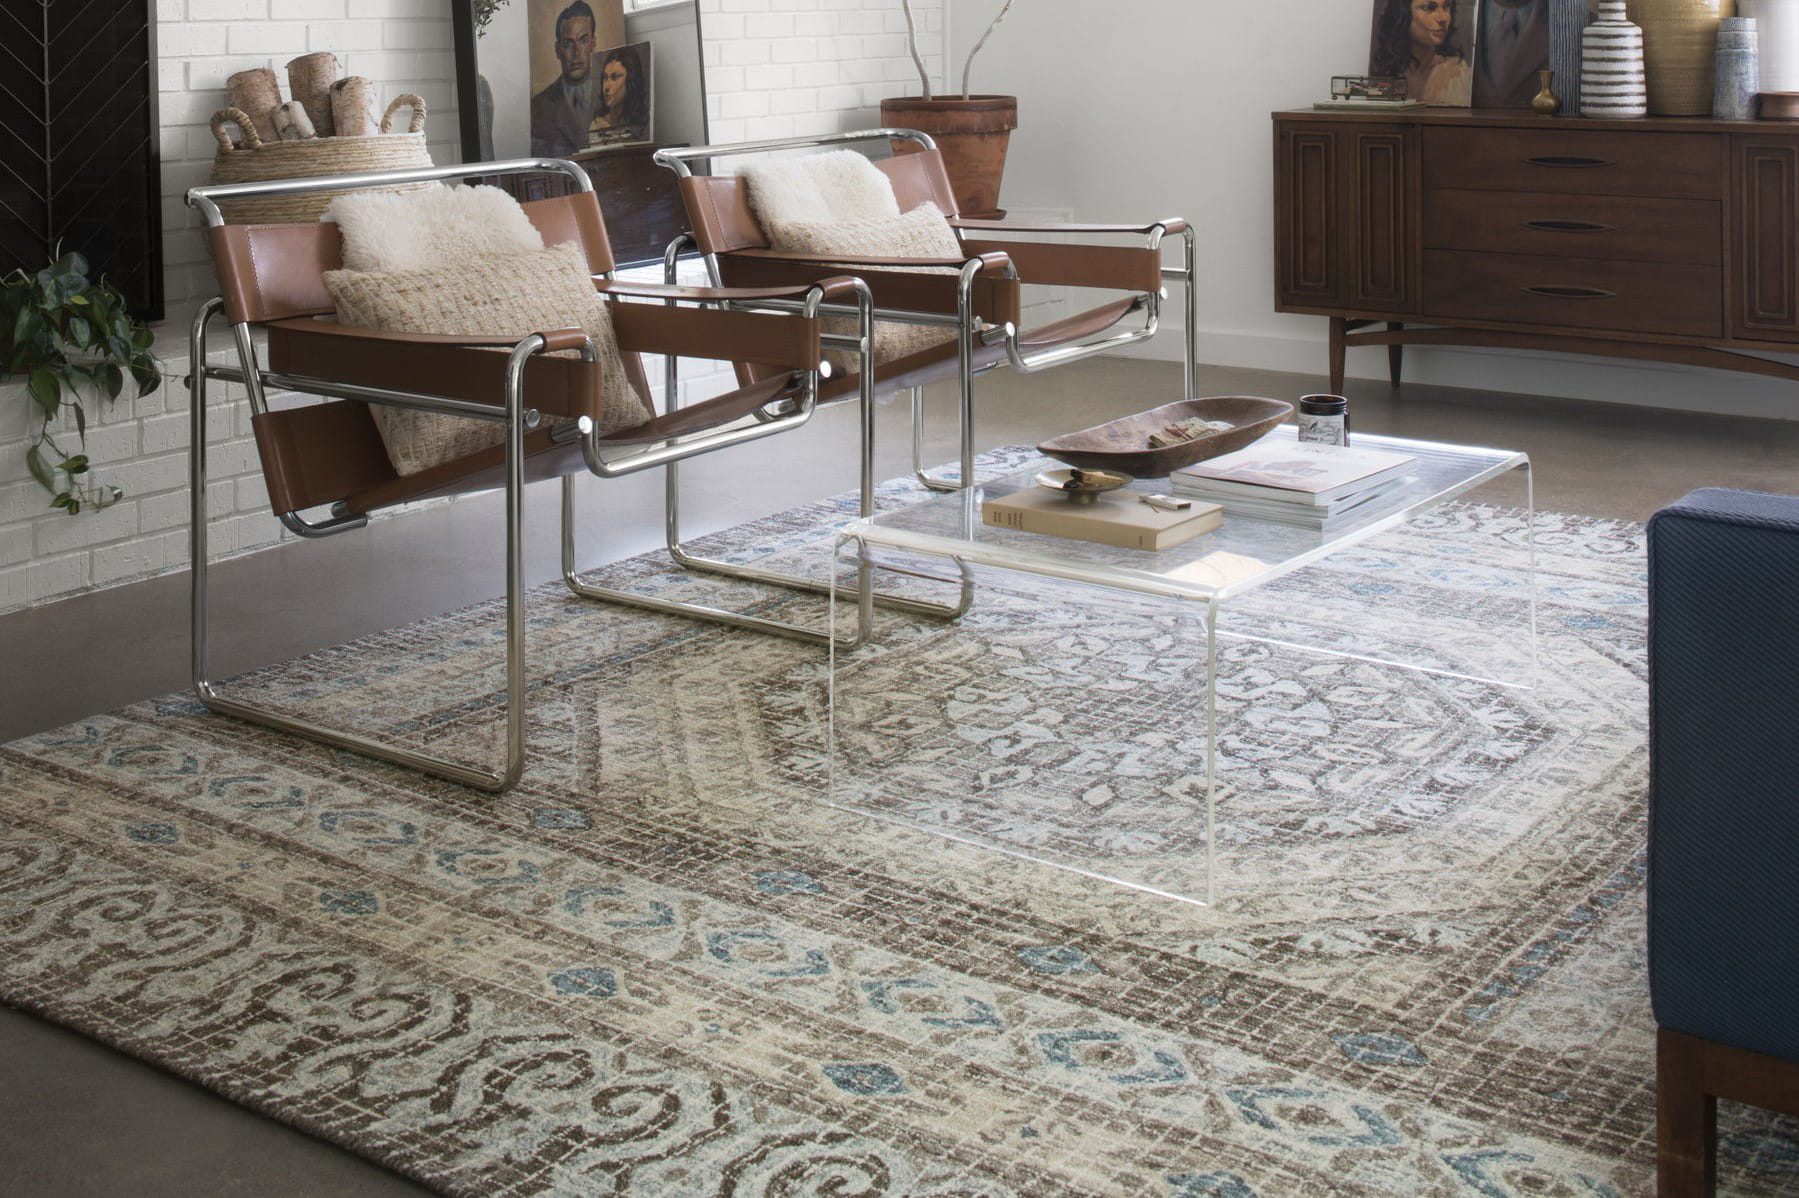 What Is The Largest Area Rug Size Plushrugs